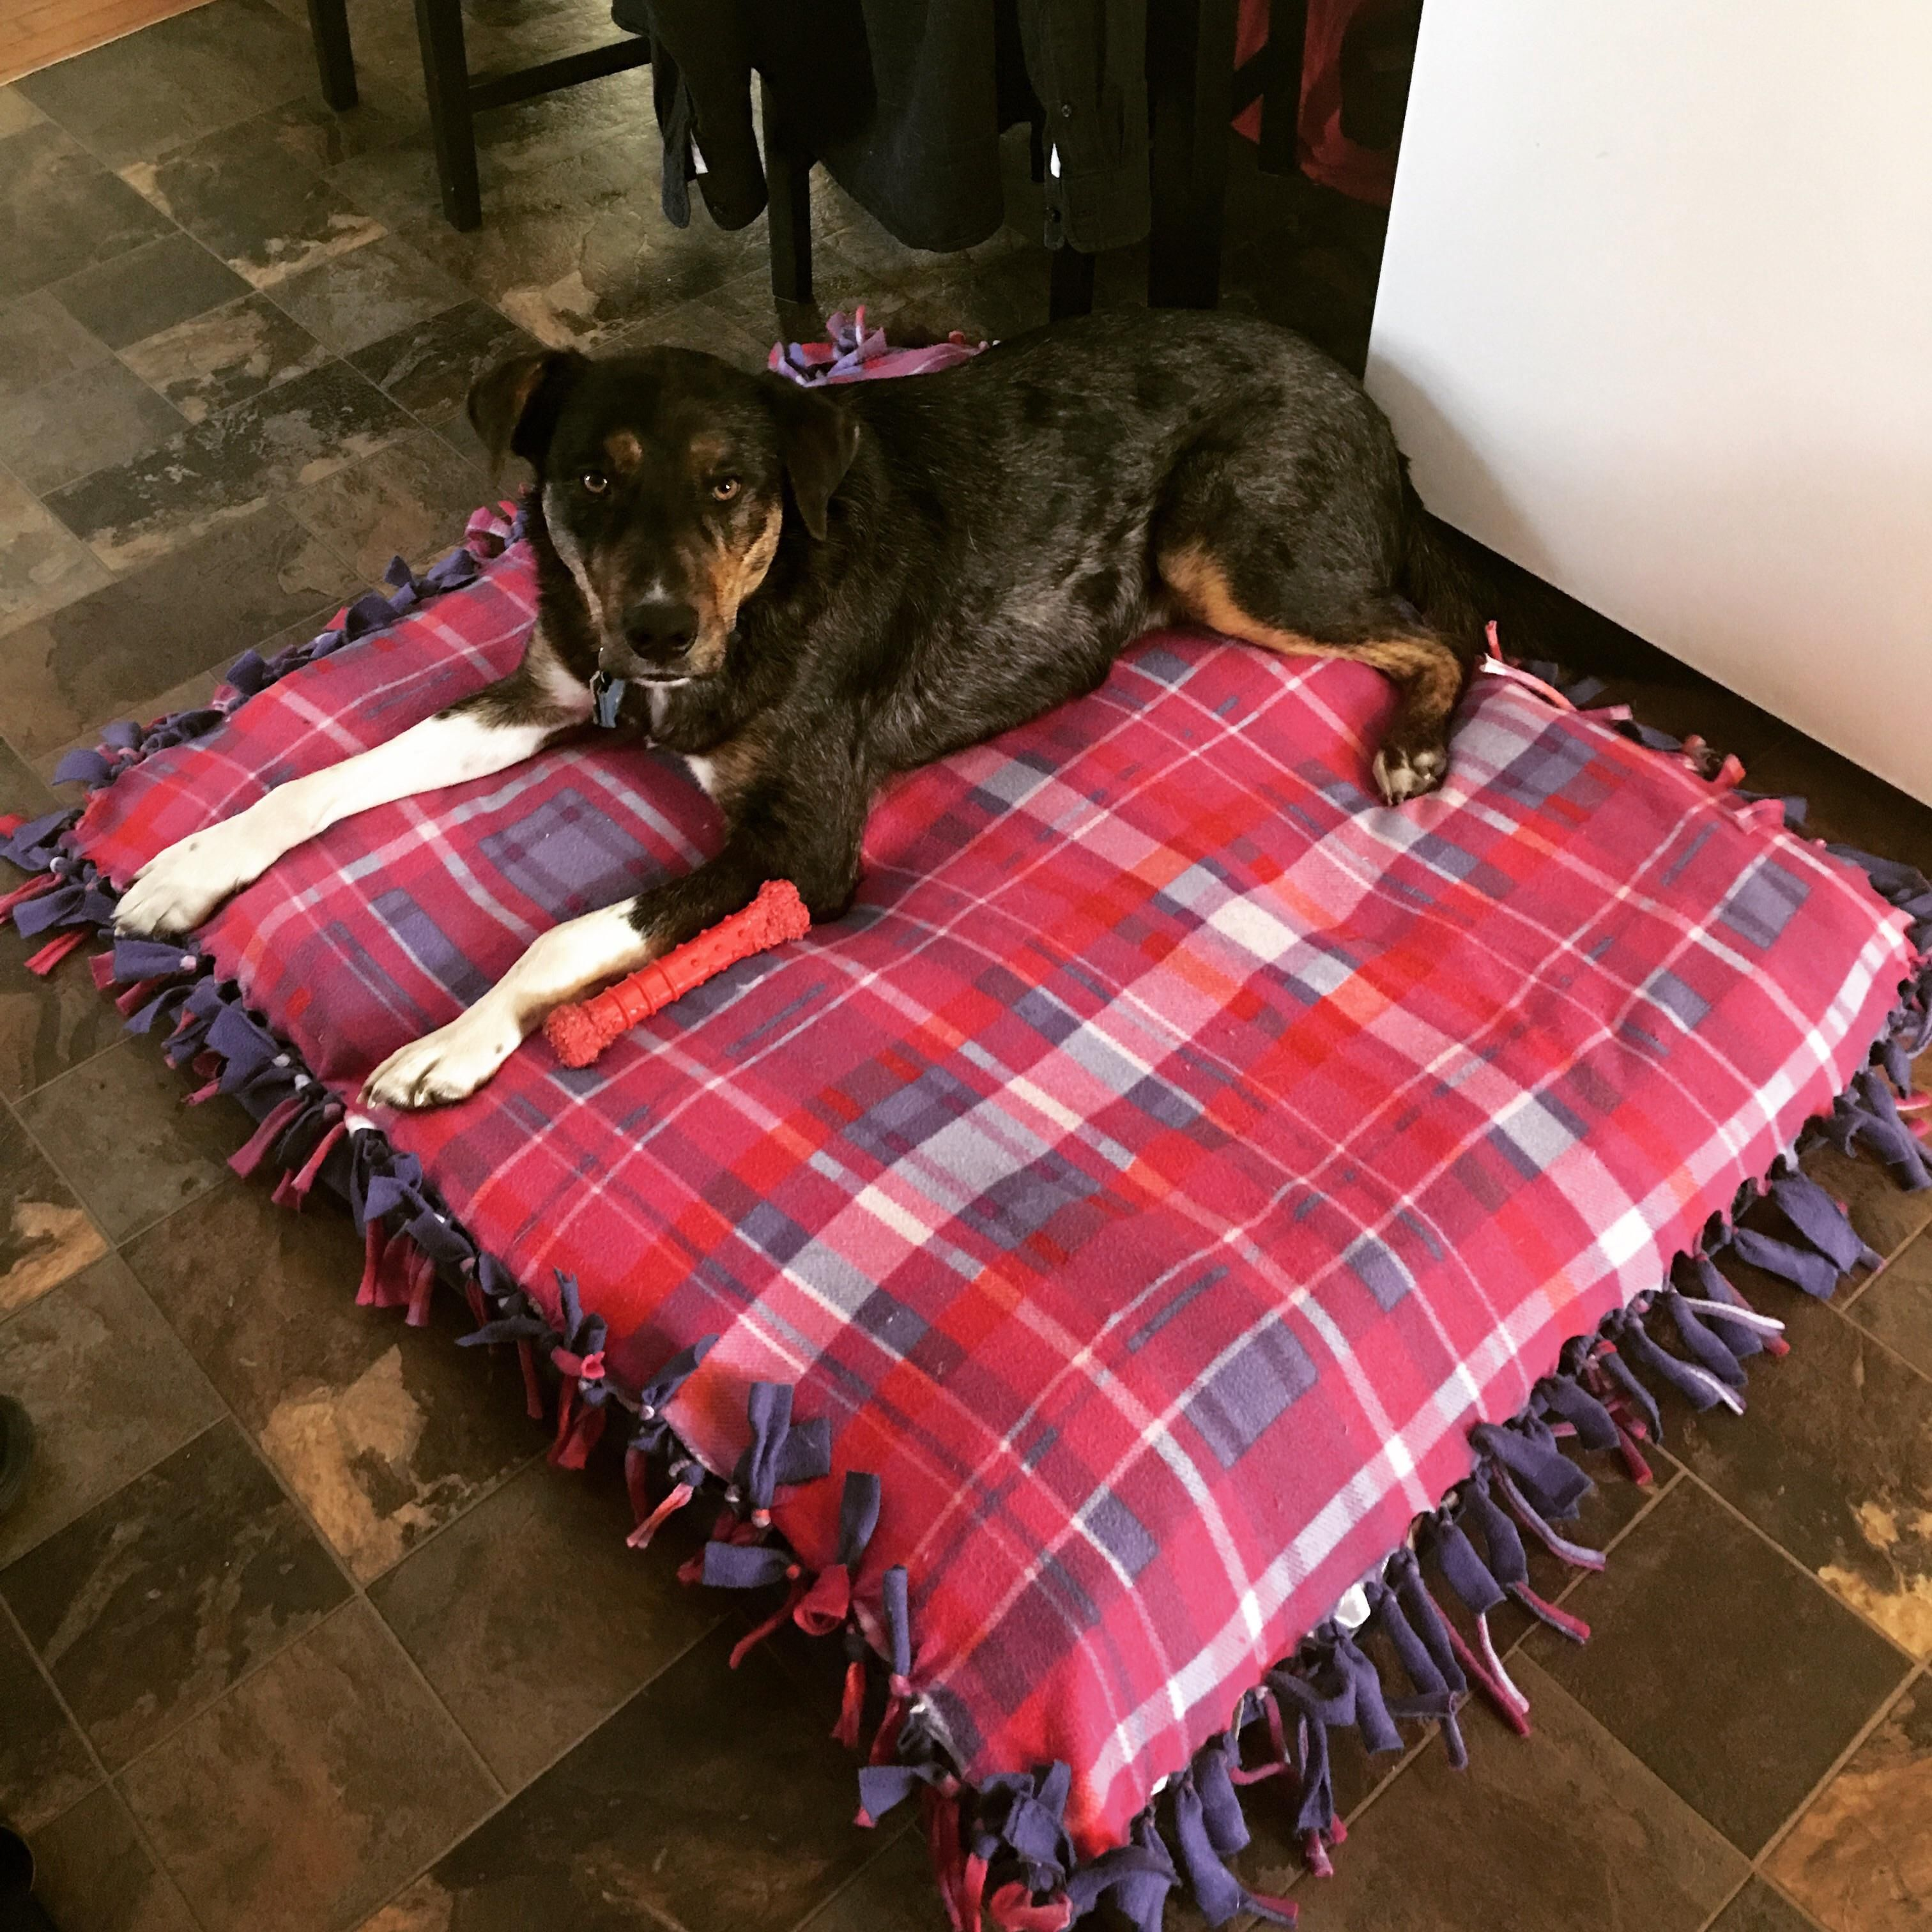 Easy Dog Bed Stuff A Fleece Tie Blanket With Old Clothes Towels